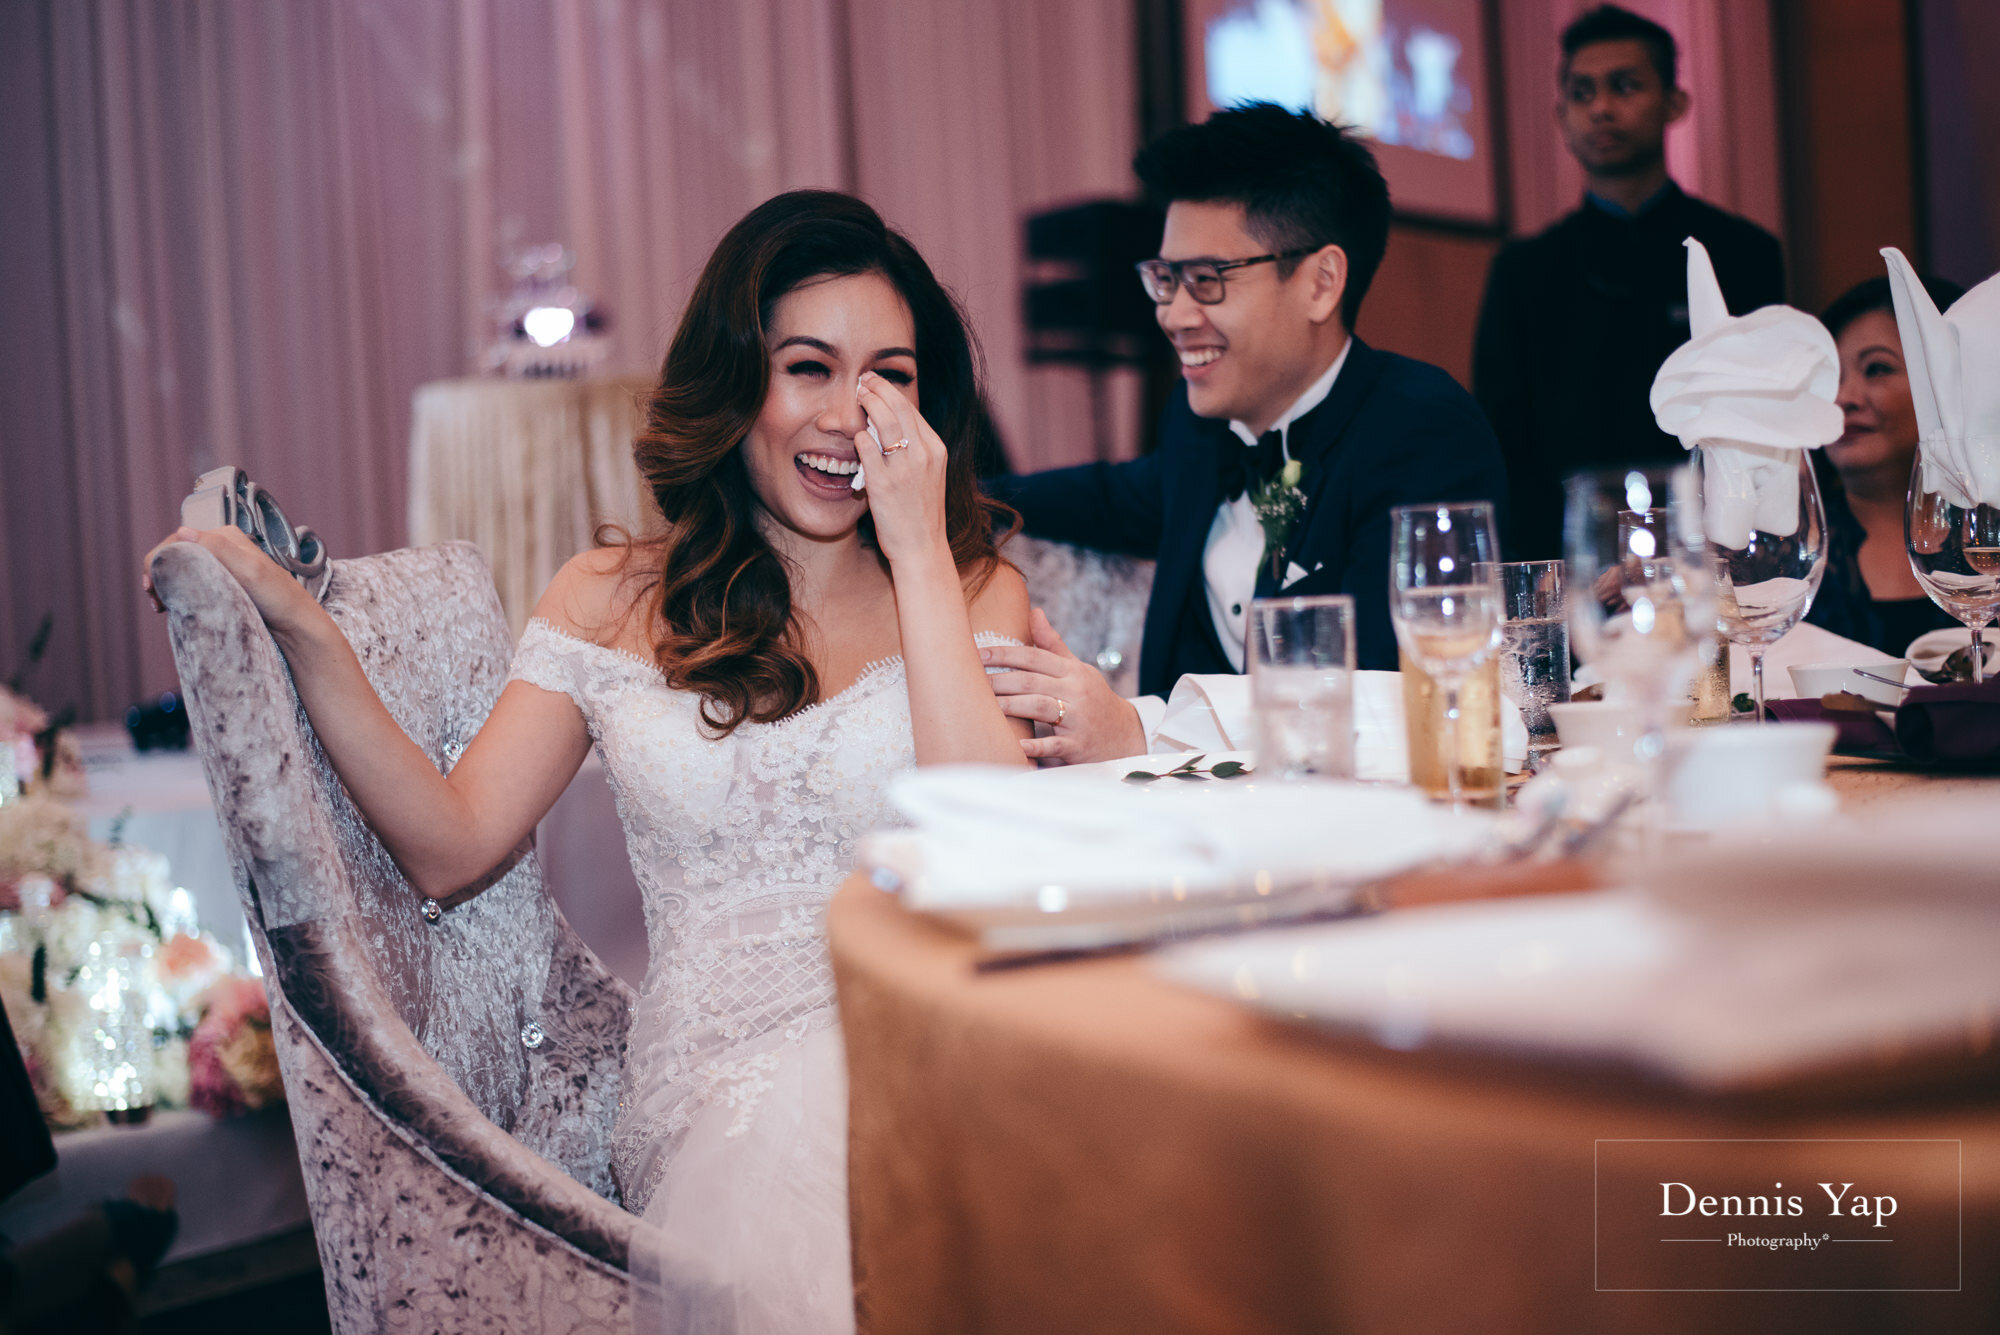 kevan khing wei wedding day hilton kuala lumpur vow exchange ceremony dennis yap photography malaysia top wedding photographer-34.jpg